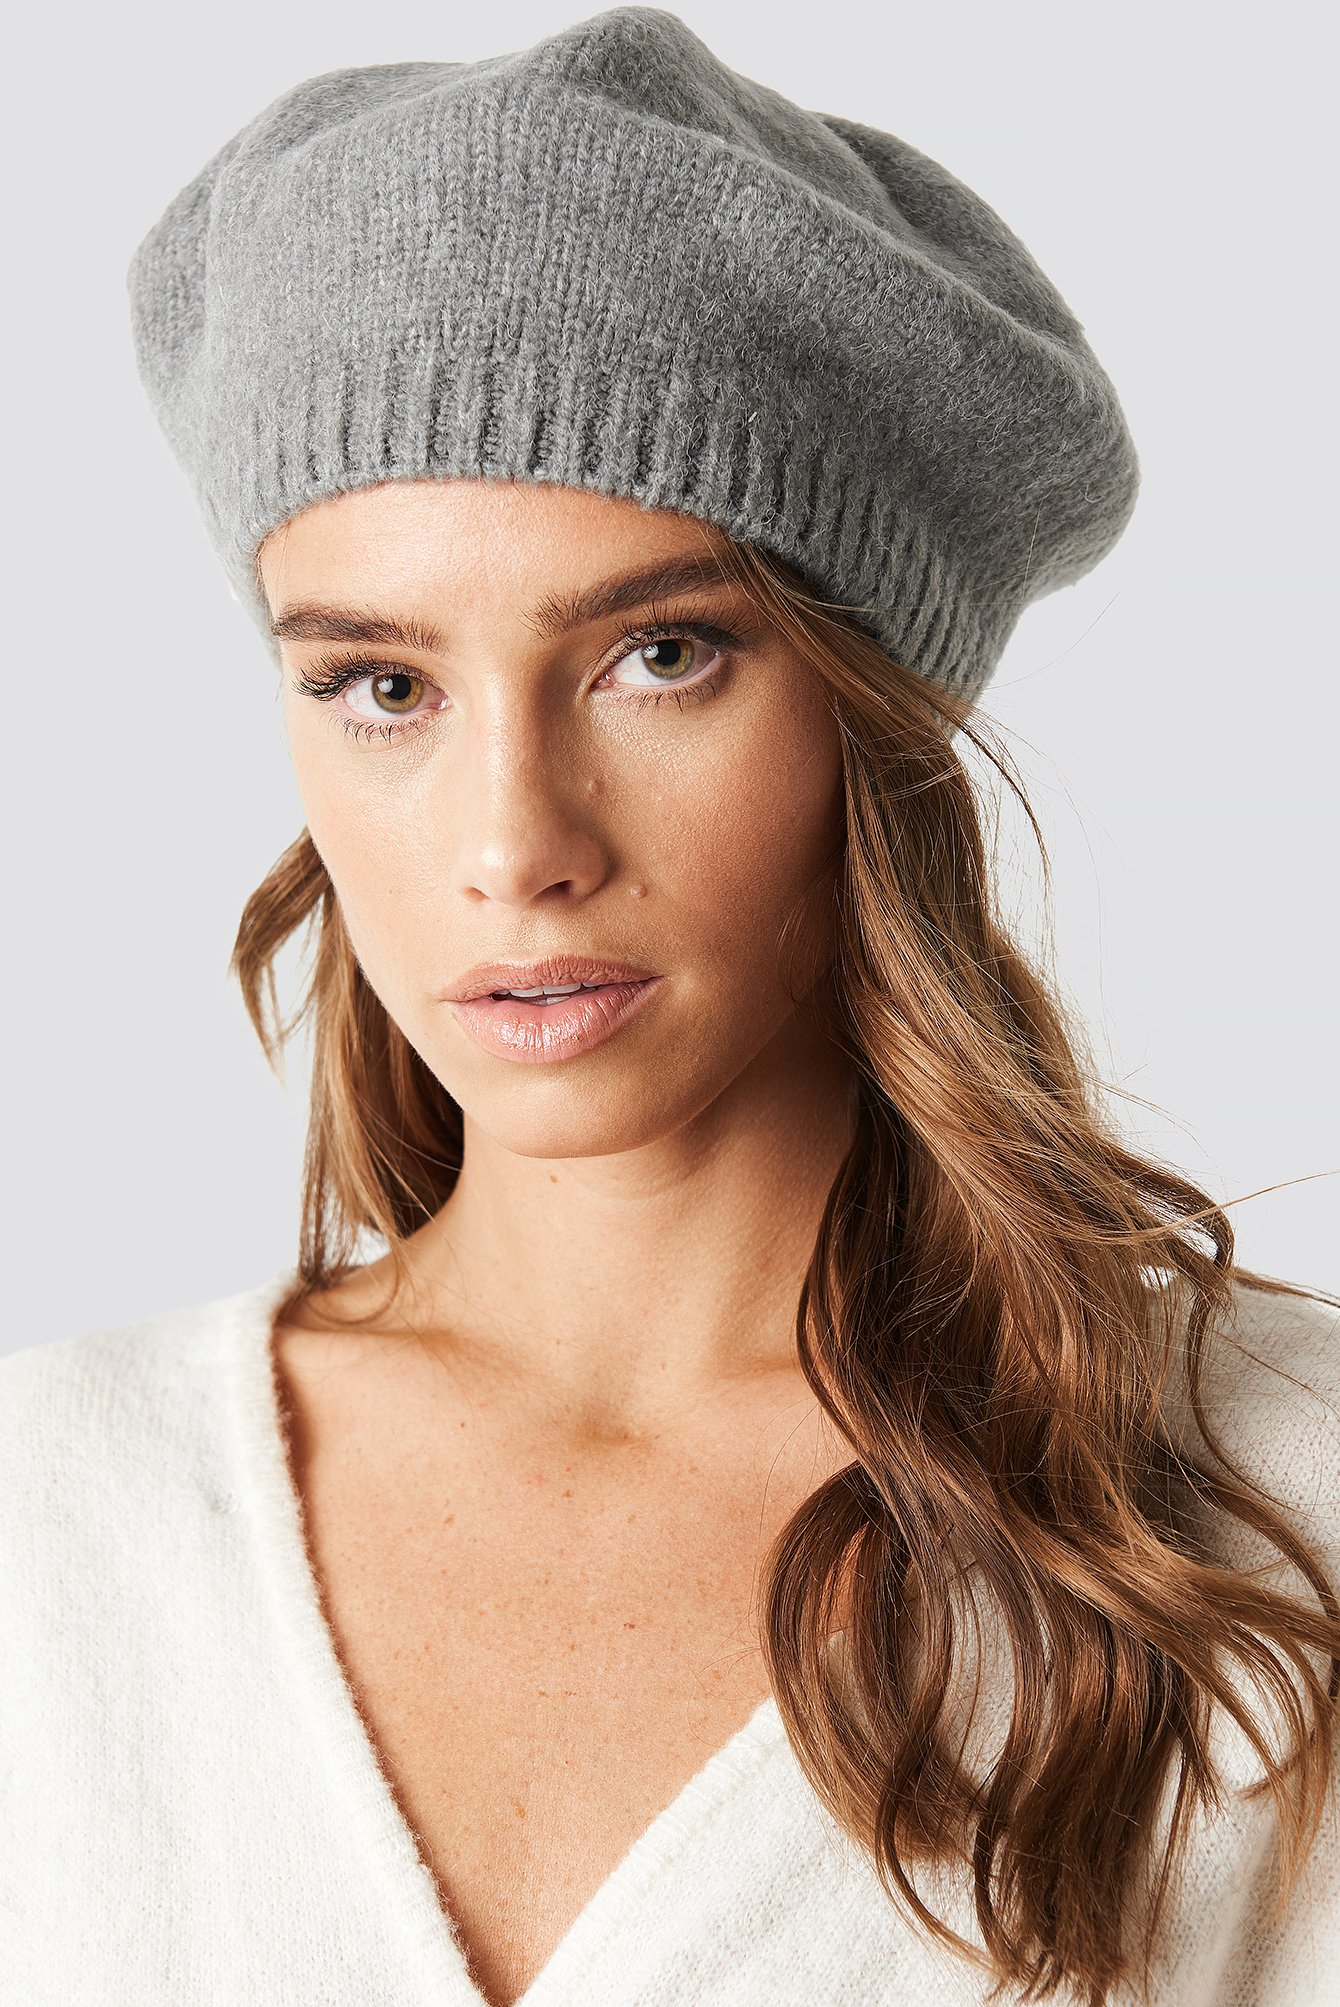 Knitted Beret Hat Grey  908199d5638